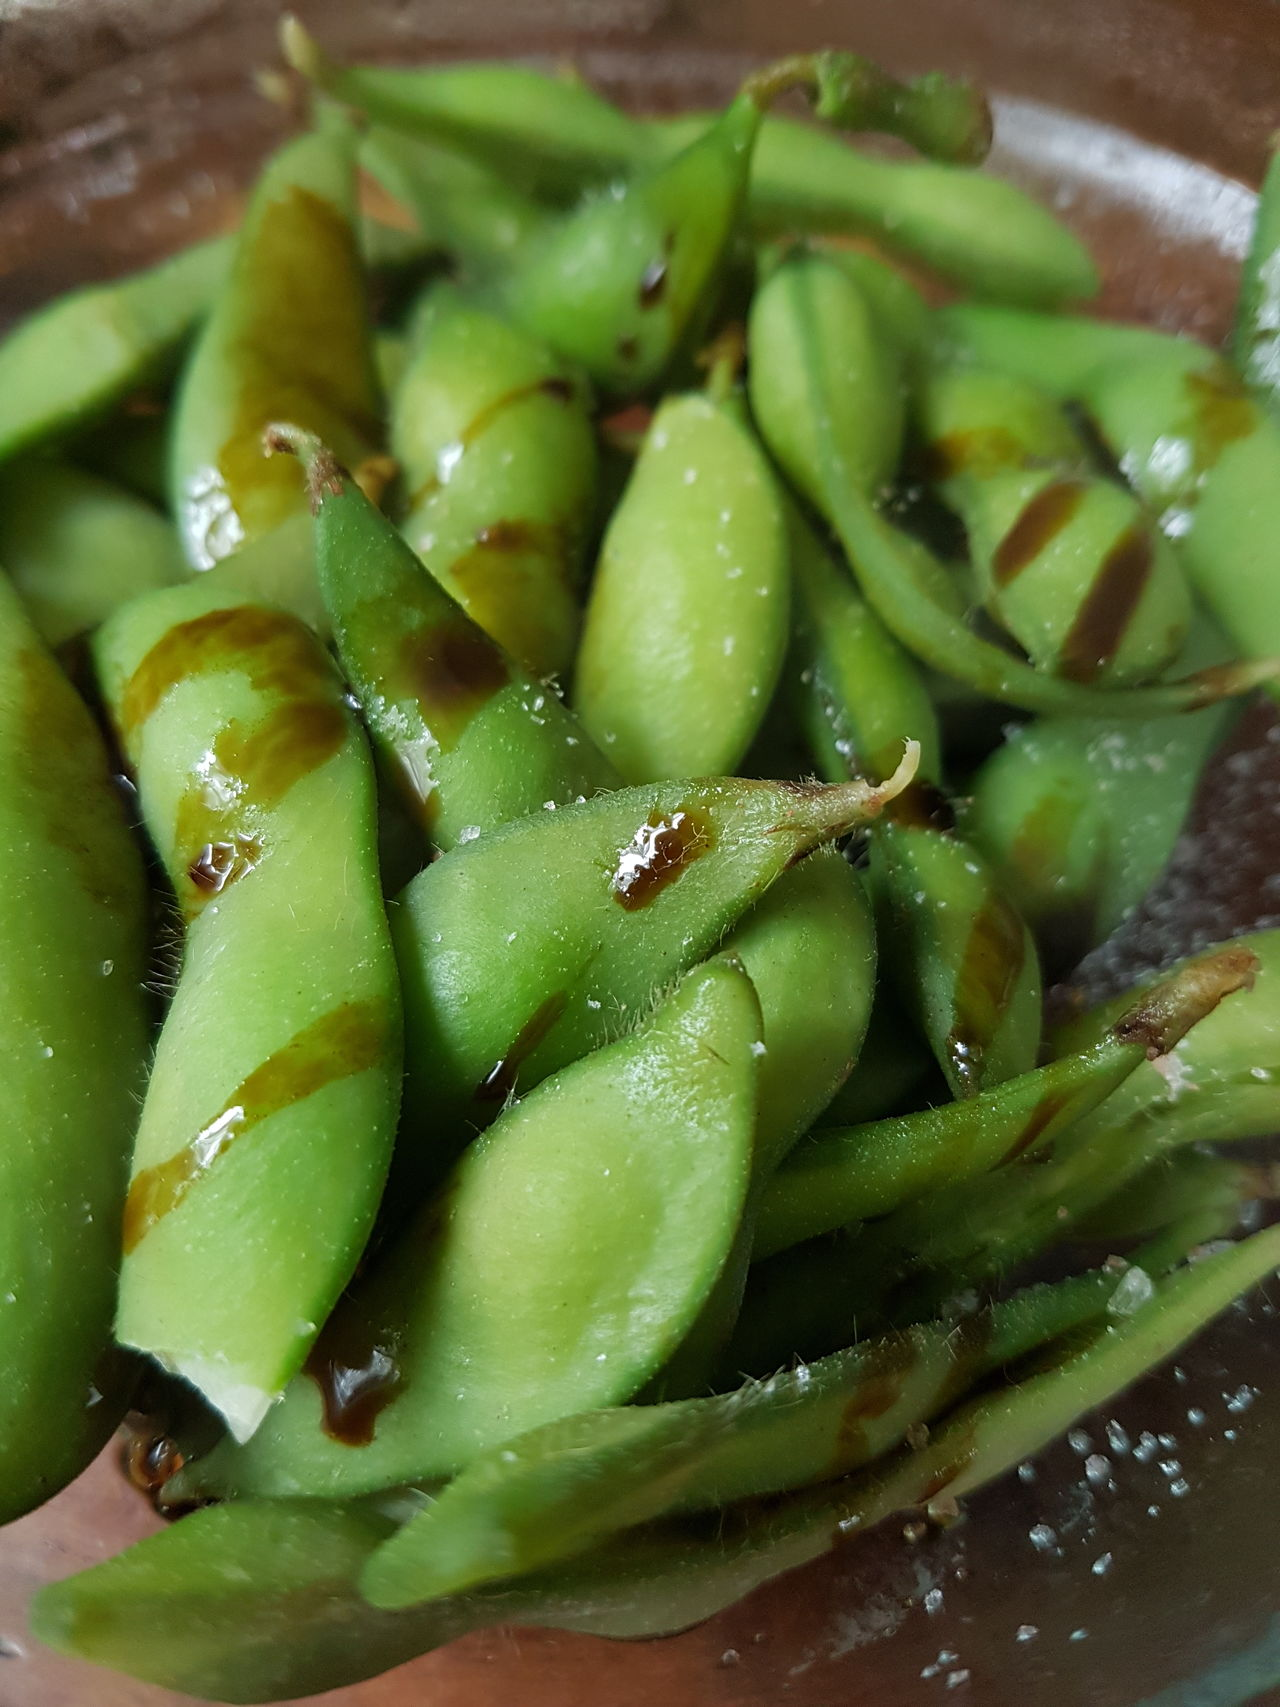 Green Color Close-up soybean soy Salt Shiney Tasty Food Food And Drink No People Freshness Healthy Eating Indoors  Day